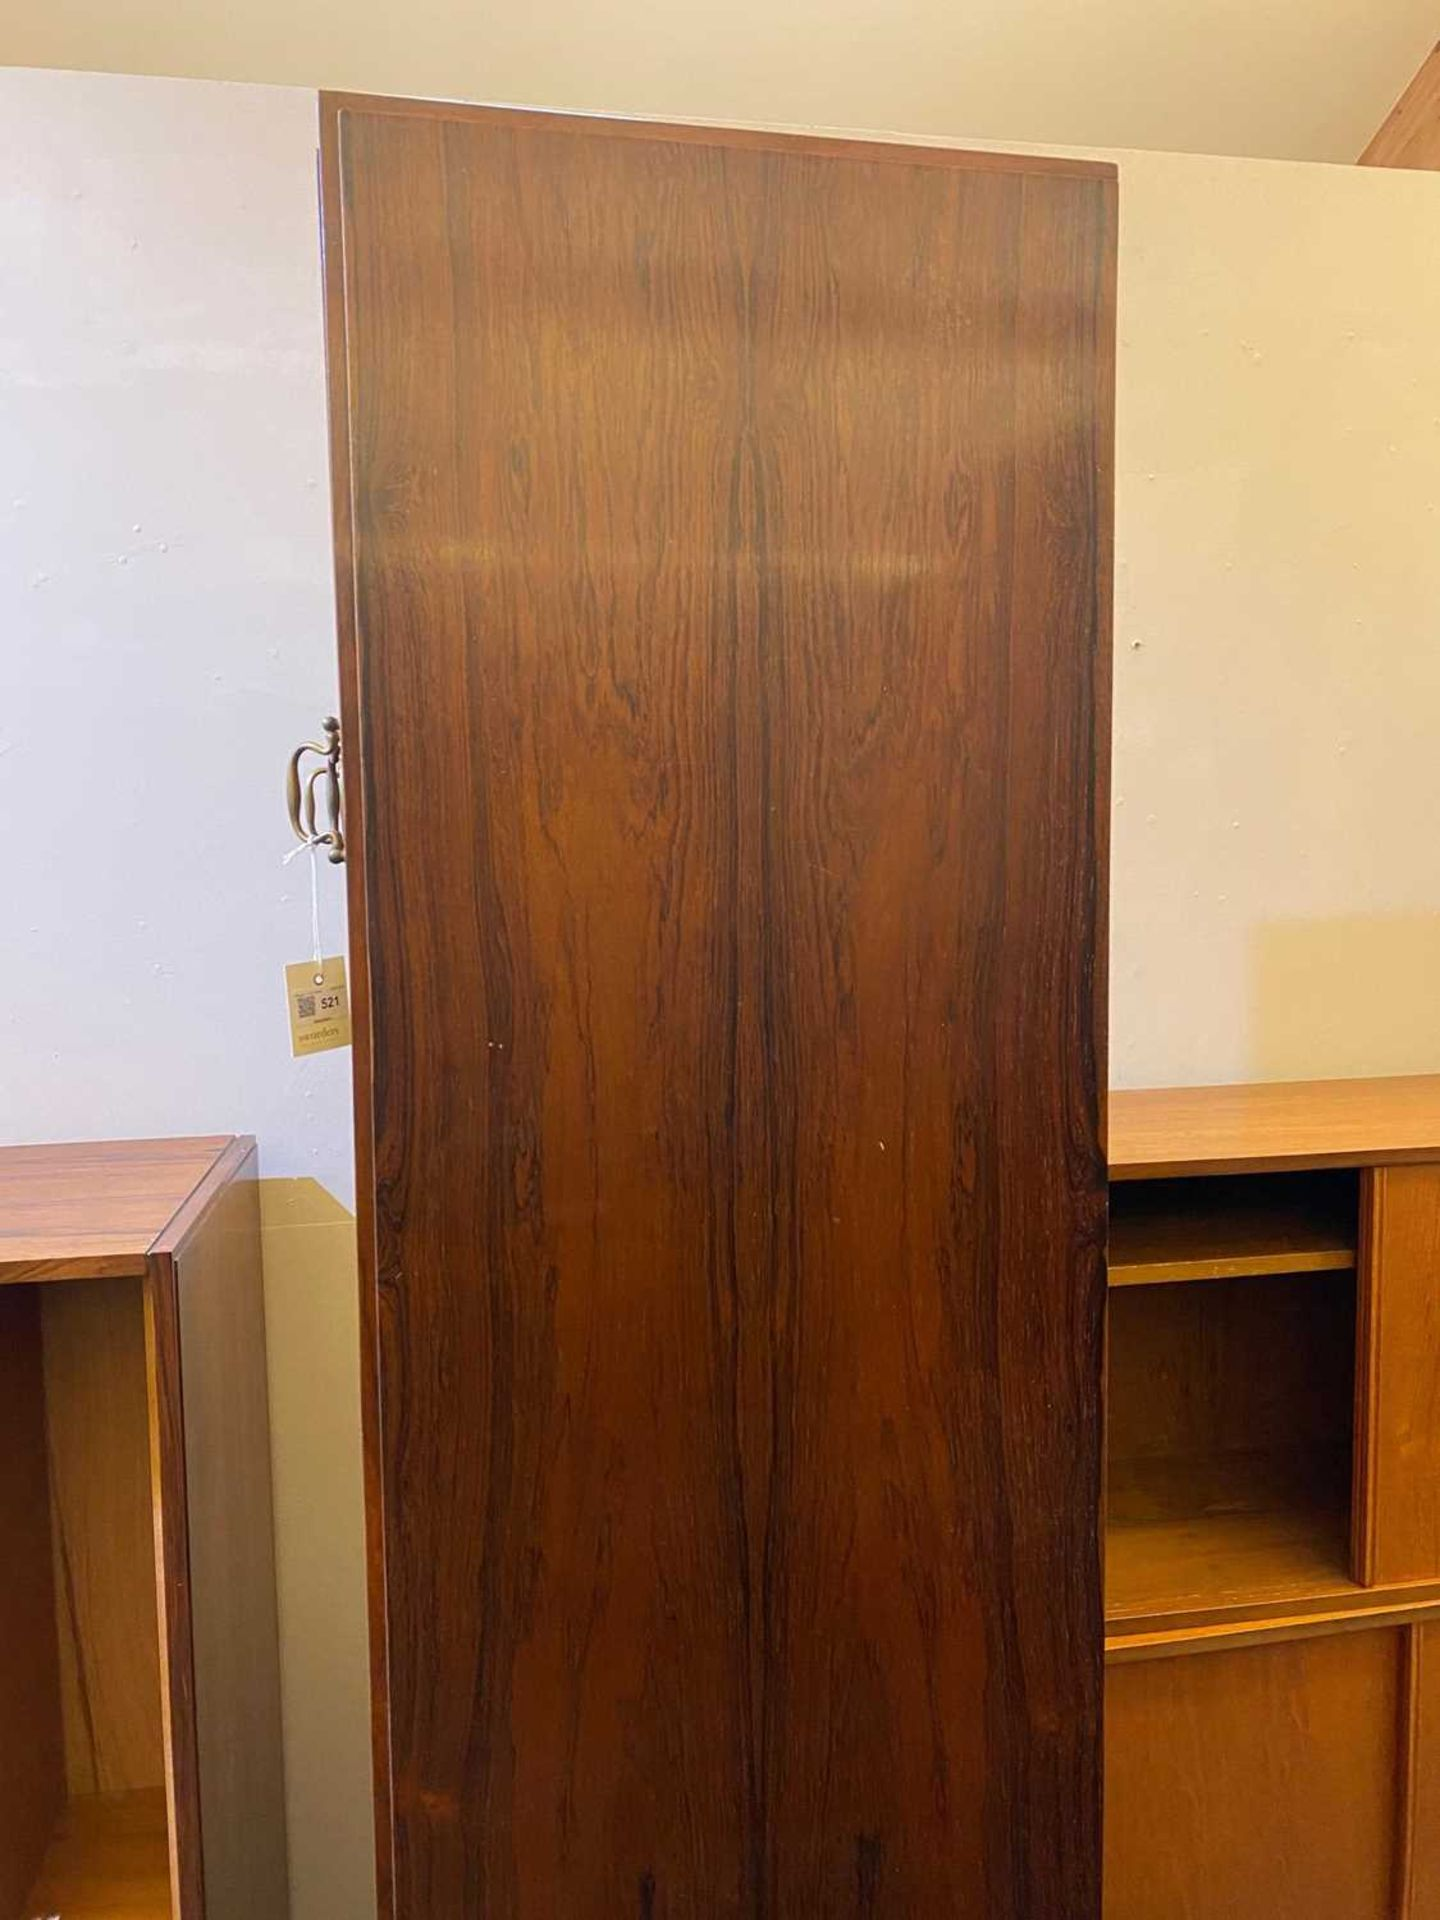 A rosewood wall cabinet, § - Image 5 of 10